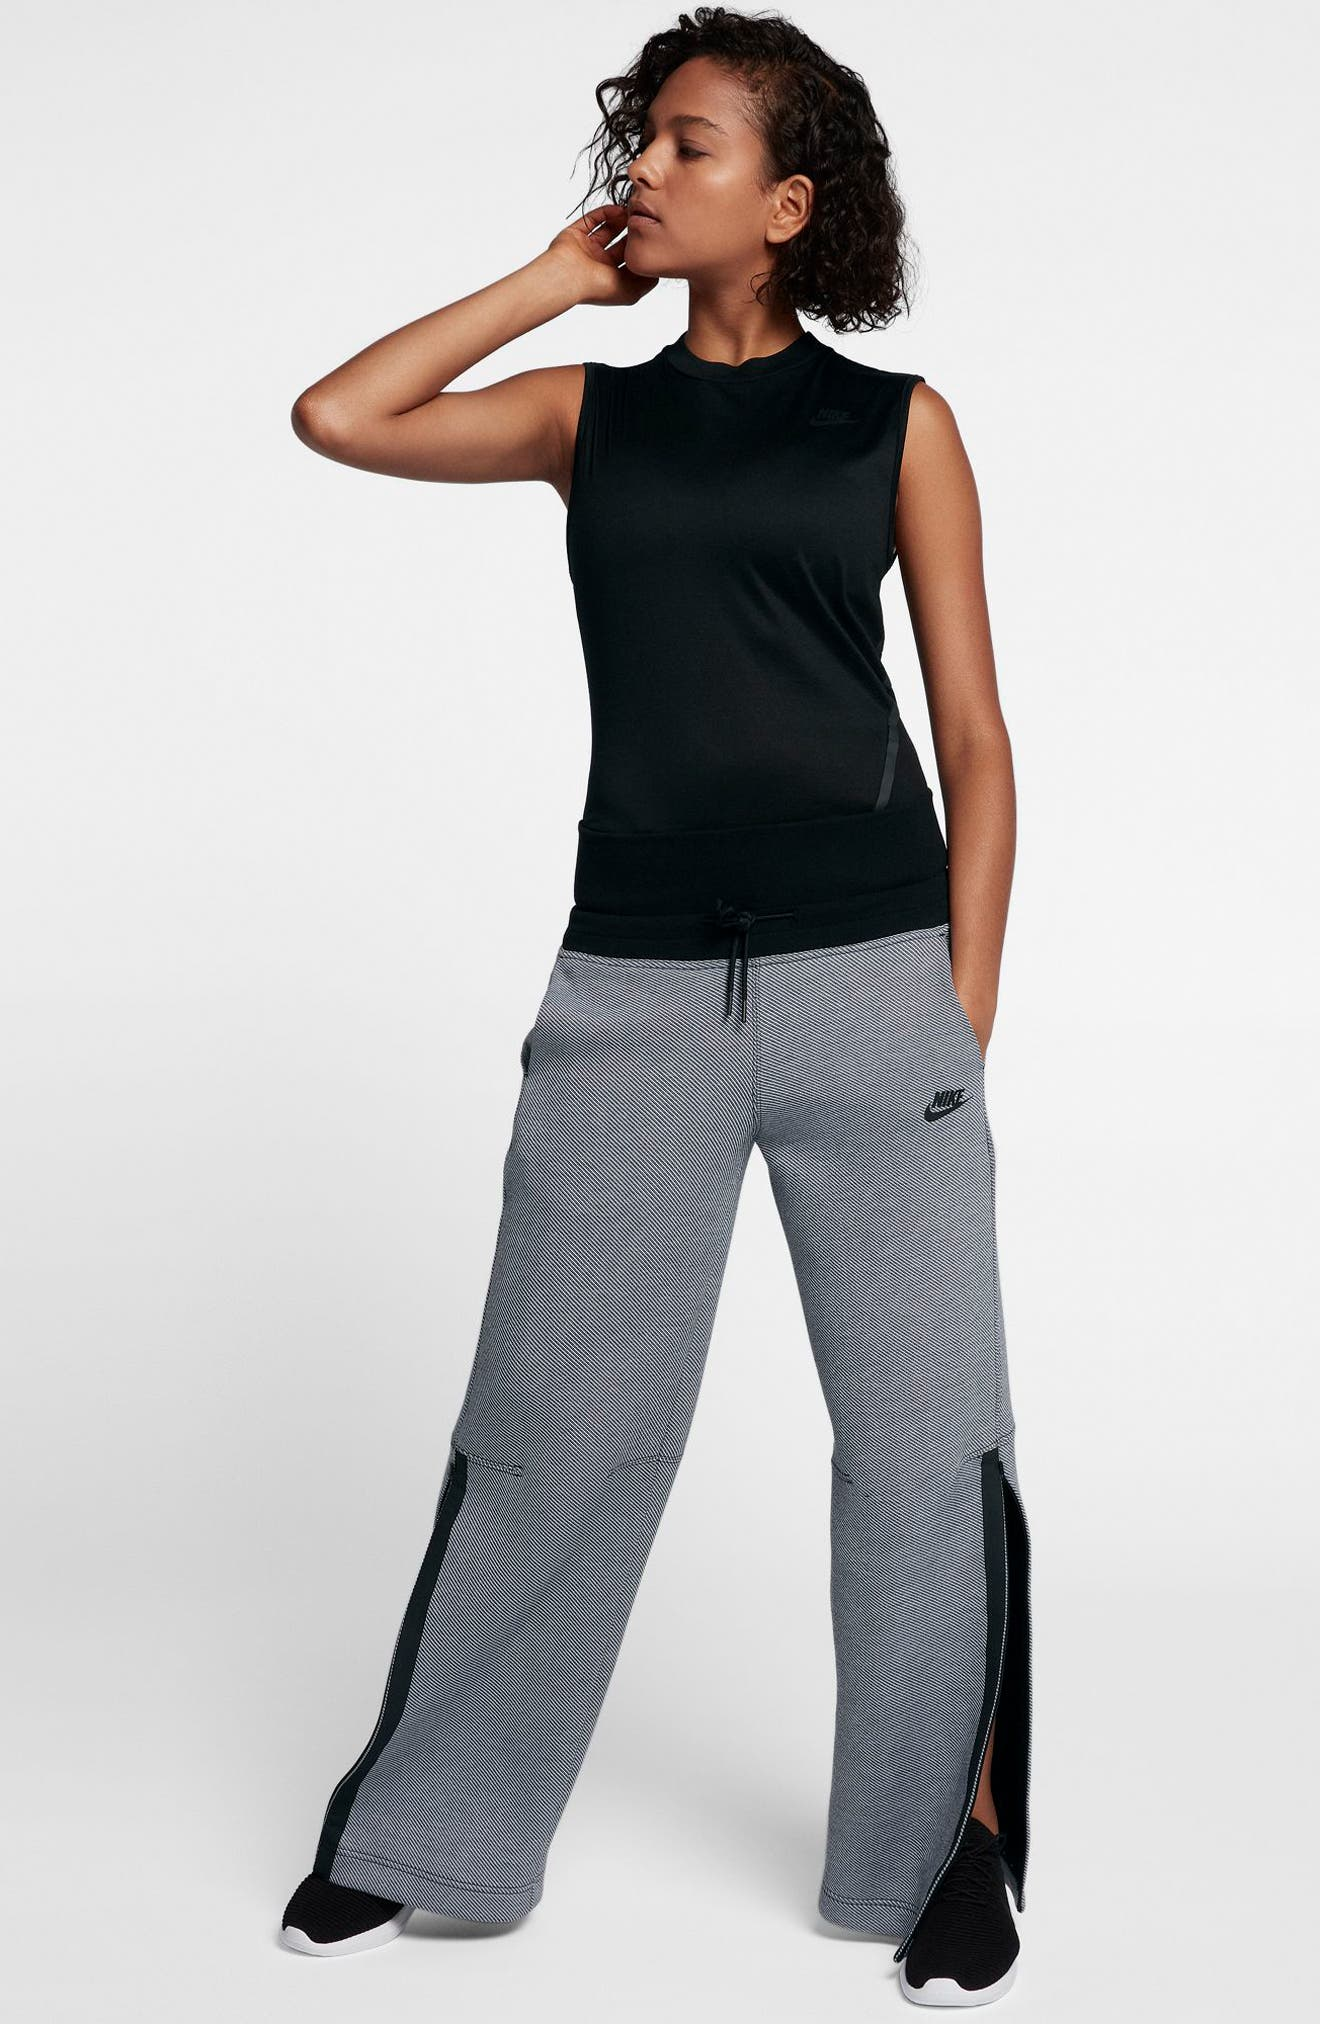 Drawstring Technical Pants,                             Alternate thumbnail 9, color,                             010